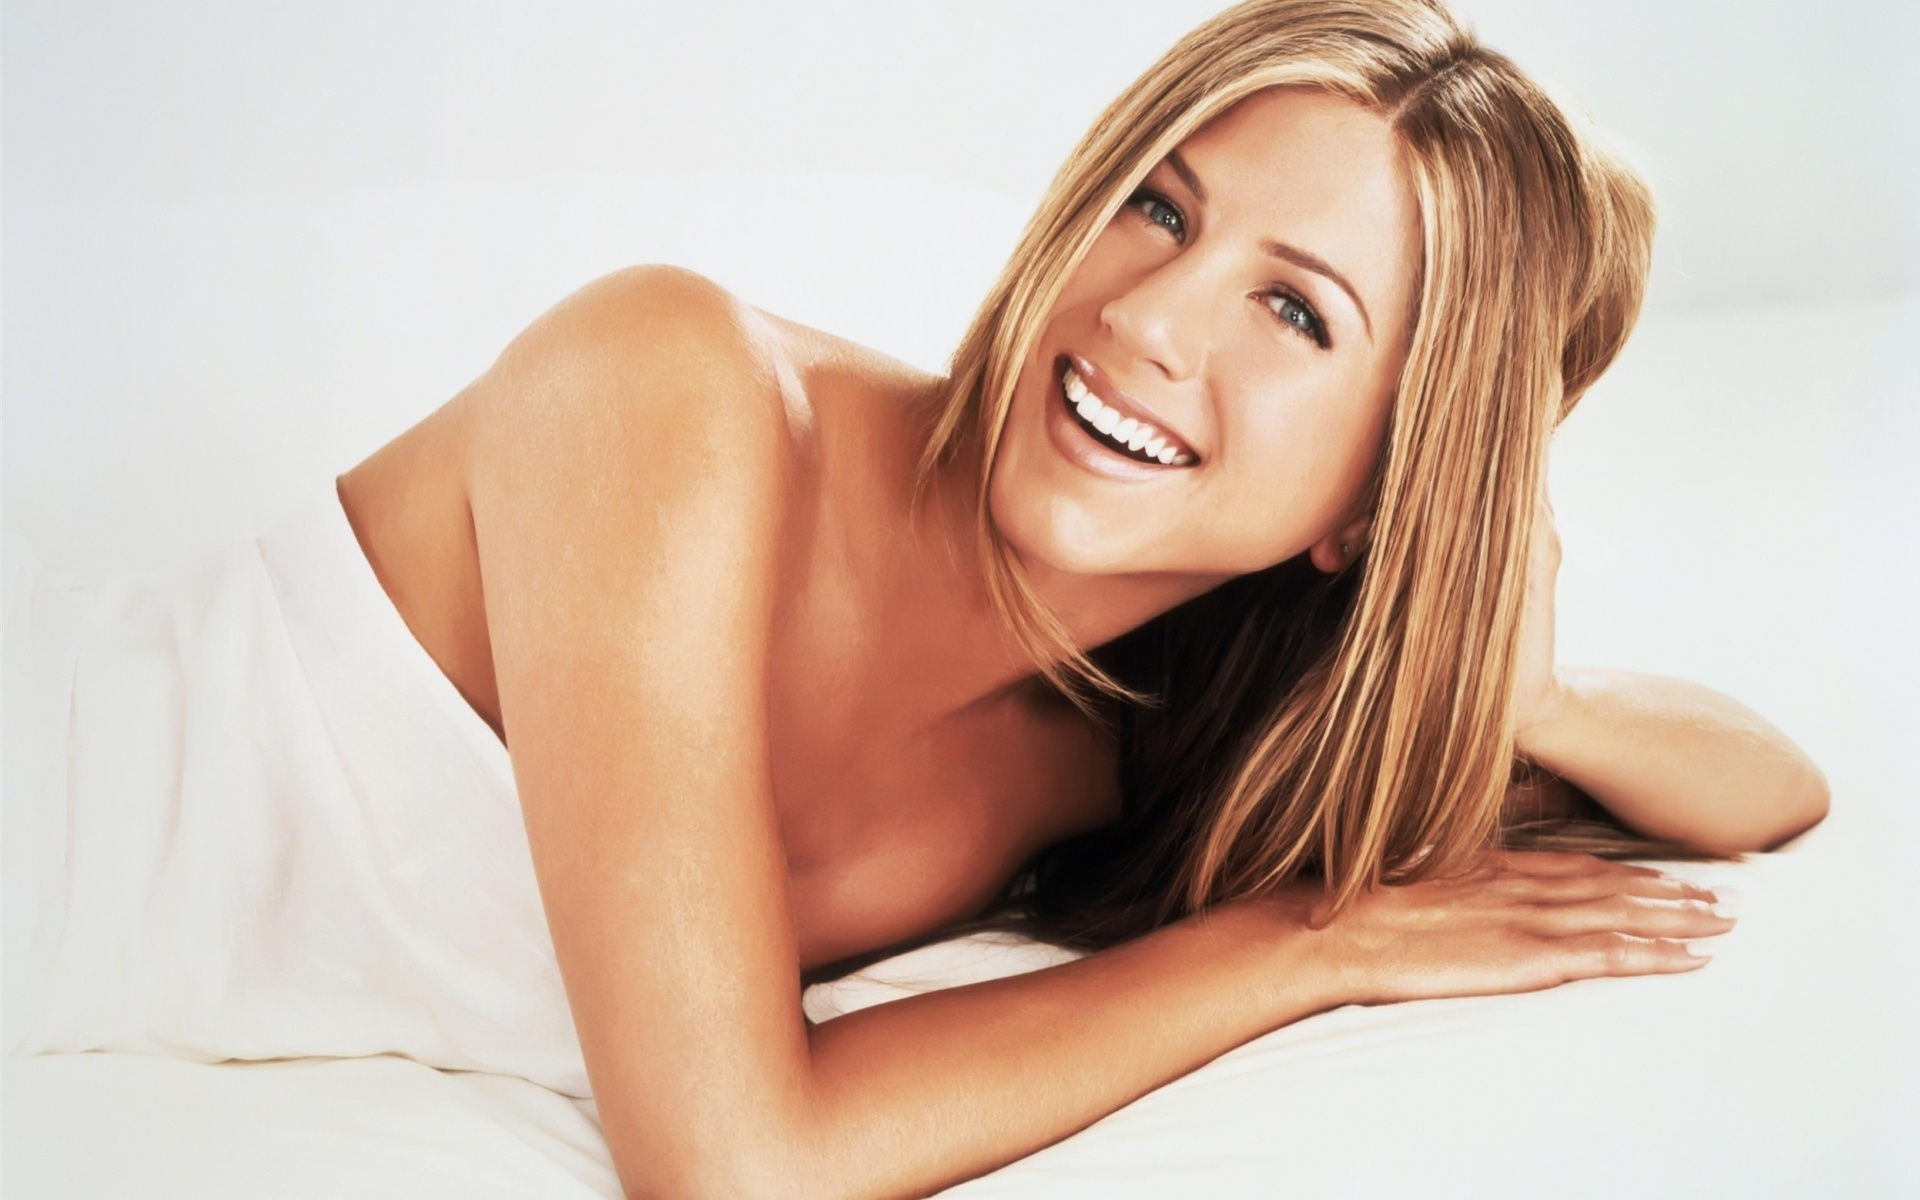 Naked pictures of jennifer aniston pic 53